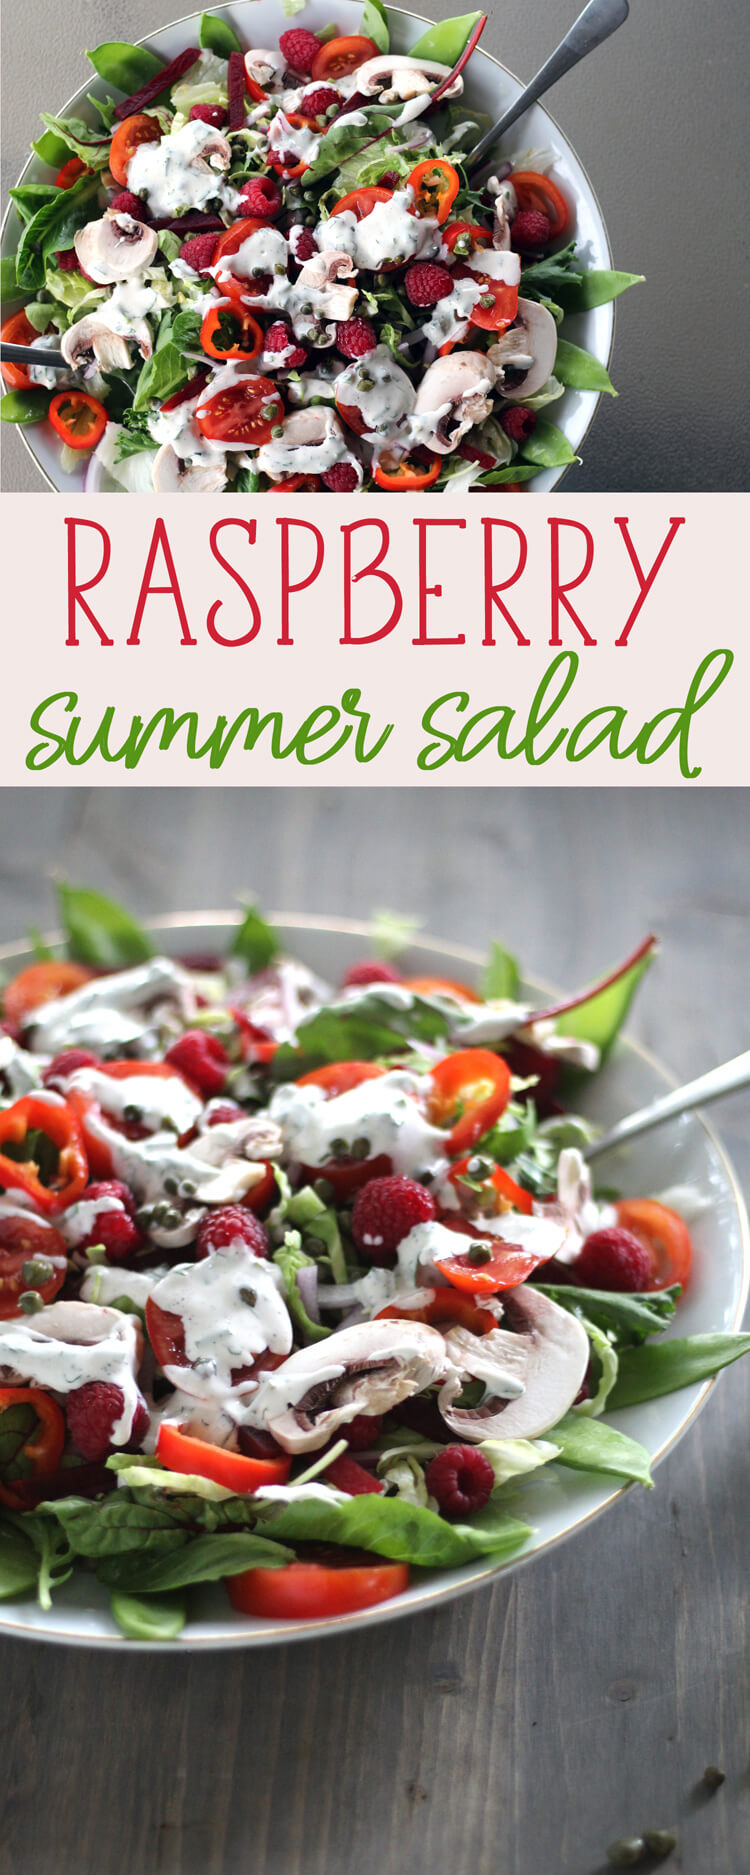 Load your plate with this fit and fresh raspberry Summer Salad.